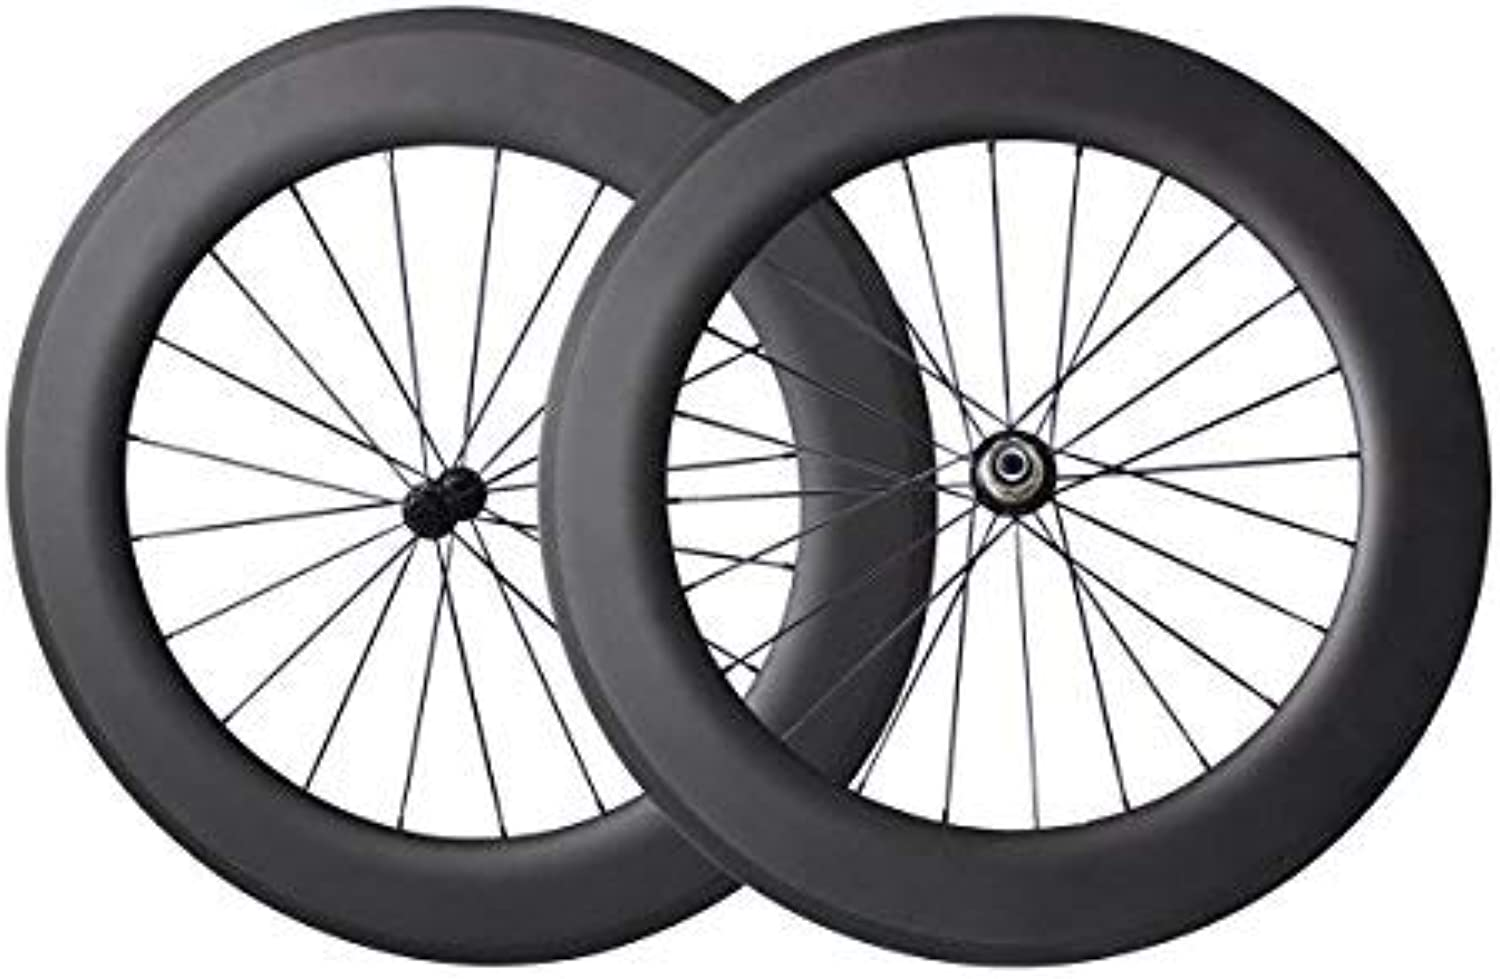 IMUST 700C Aero Carbon Wheelset 86mm Deep 27mm Wide Clincher Tubeless Ready Racing Bike Novatec Straight Pull Hub Triathlon wheels(Best for  Triathlon)